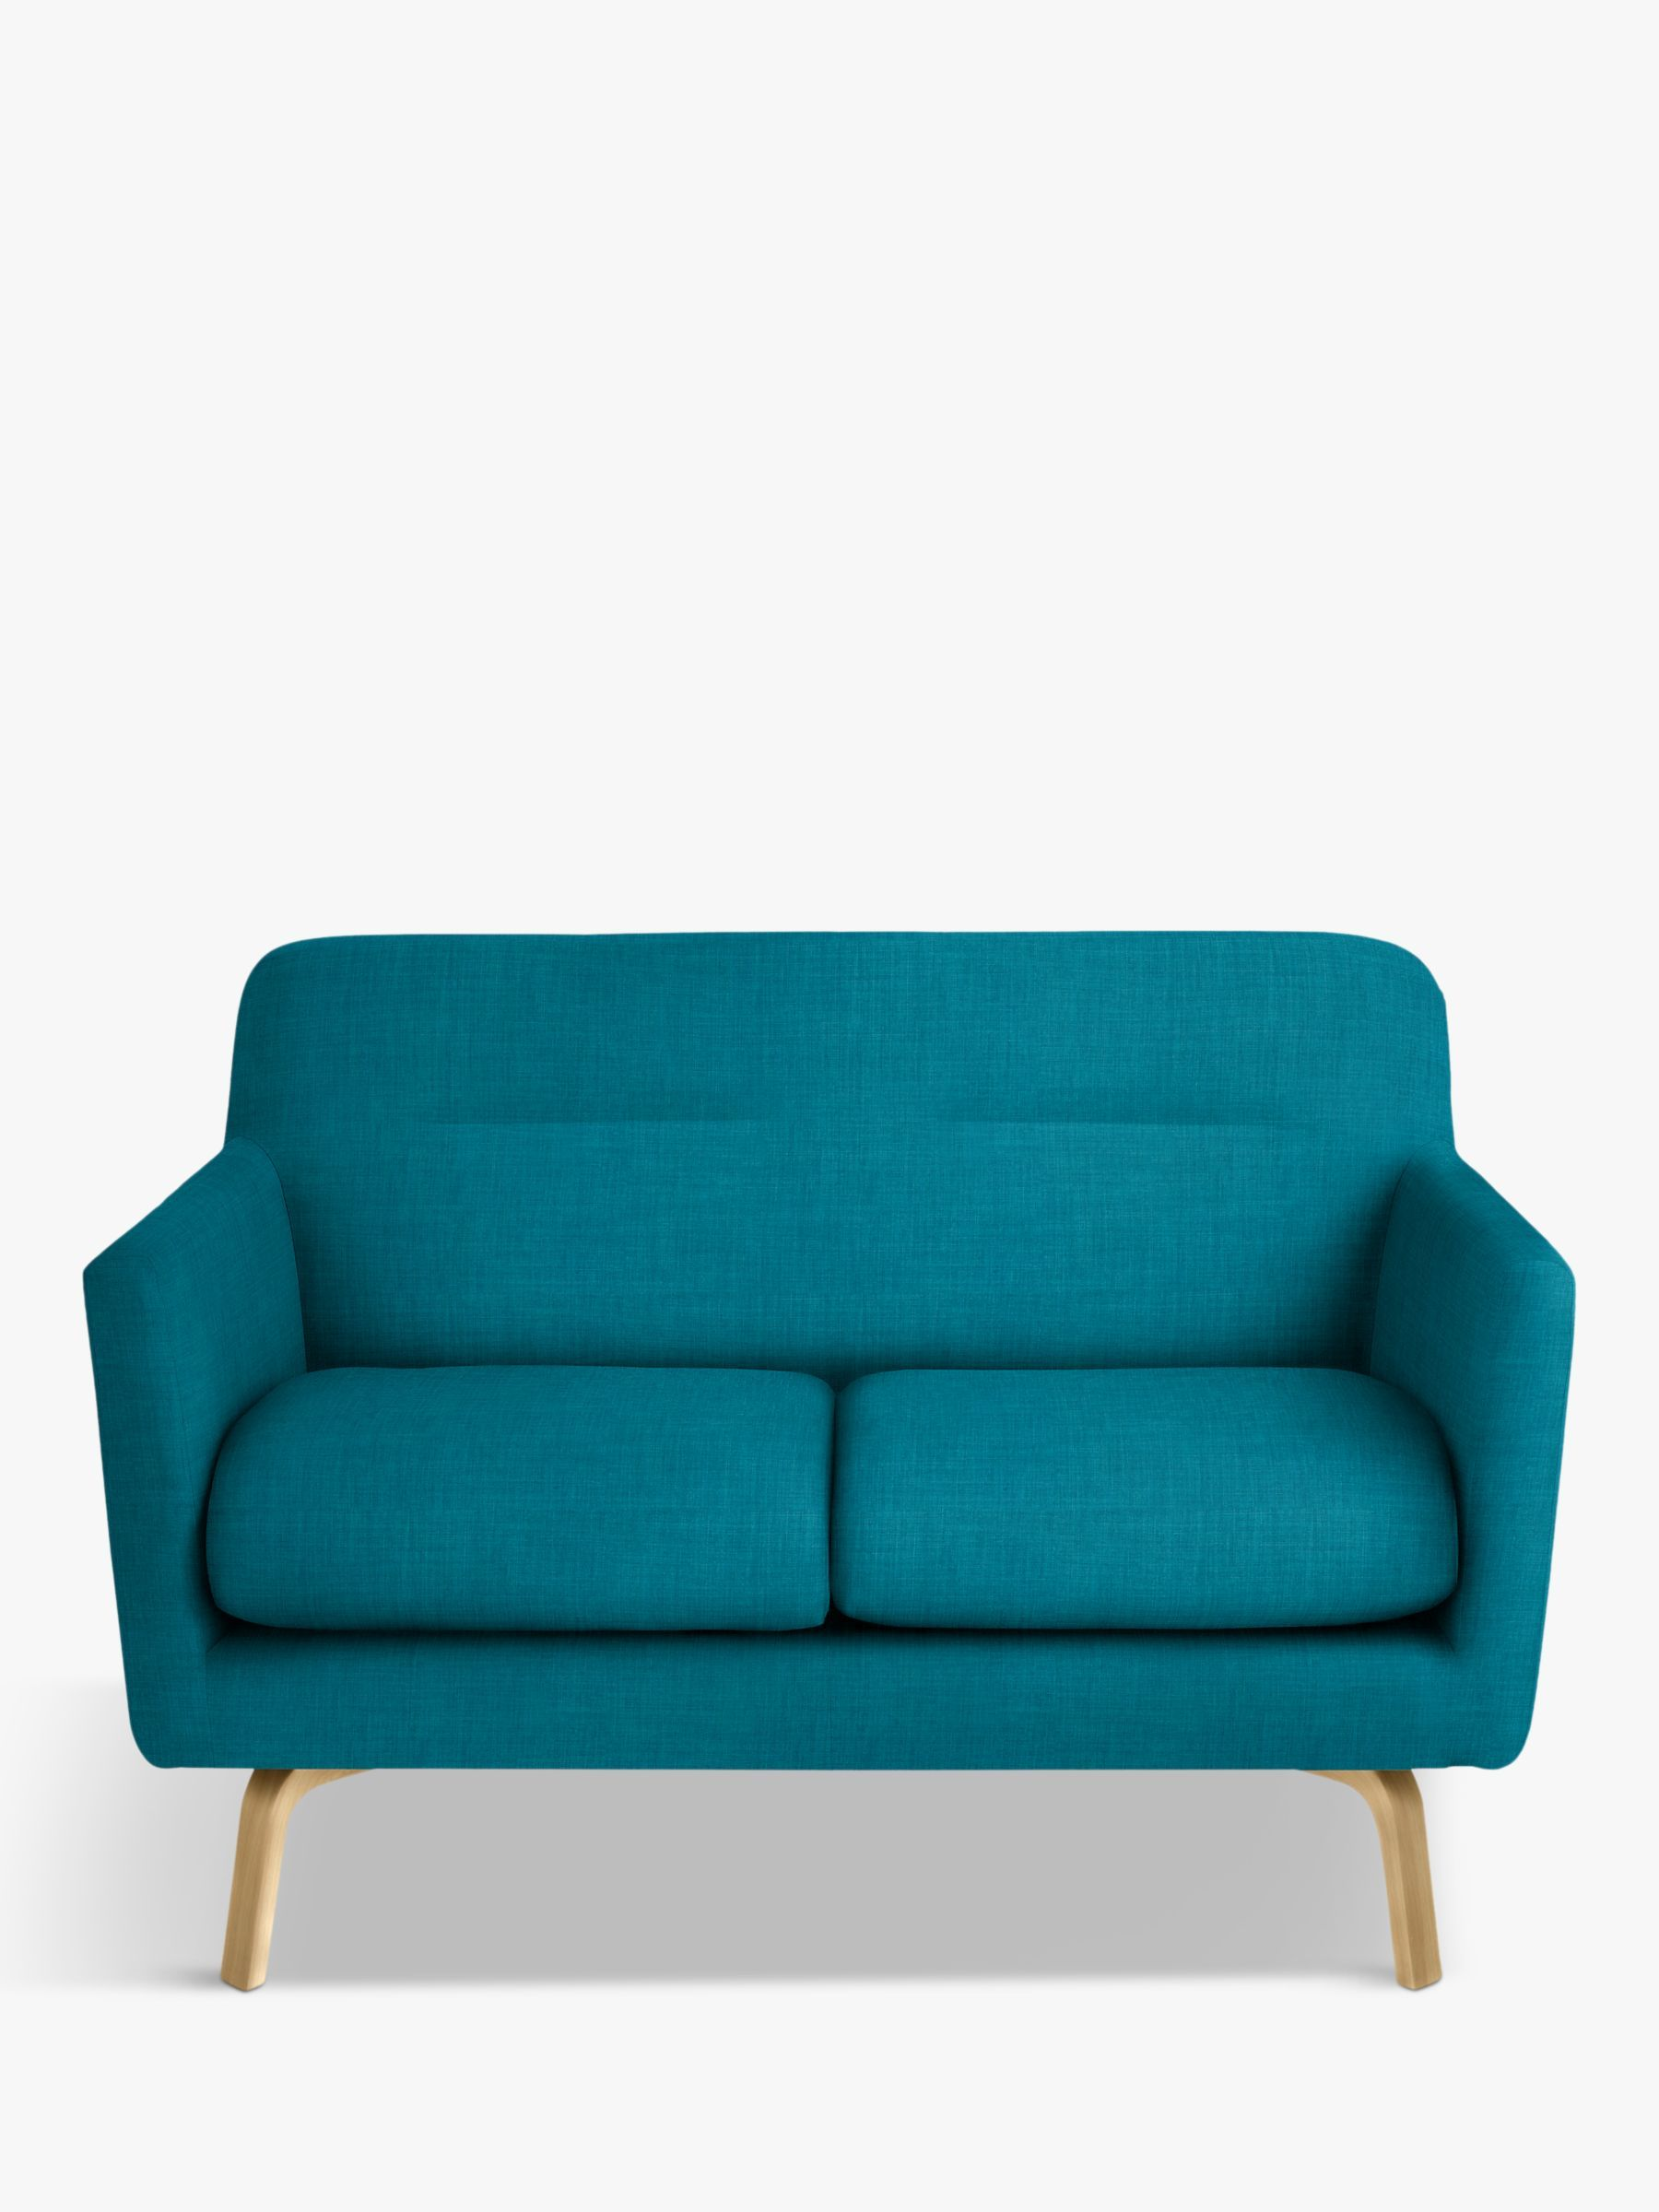 House By John Lewis Archie Ii Small 2 Seater Sofa Light Leg Fraser Teal 2 Seater Sofa Sofa Love Seat